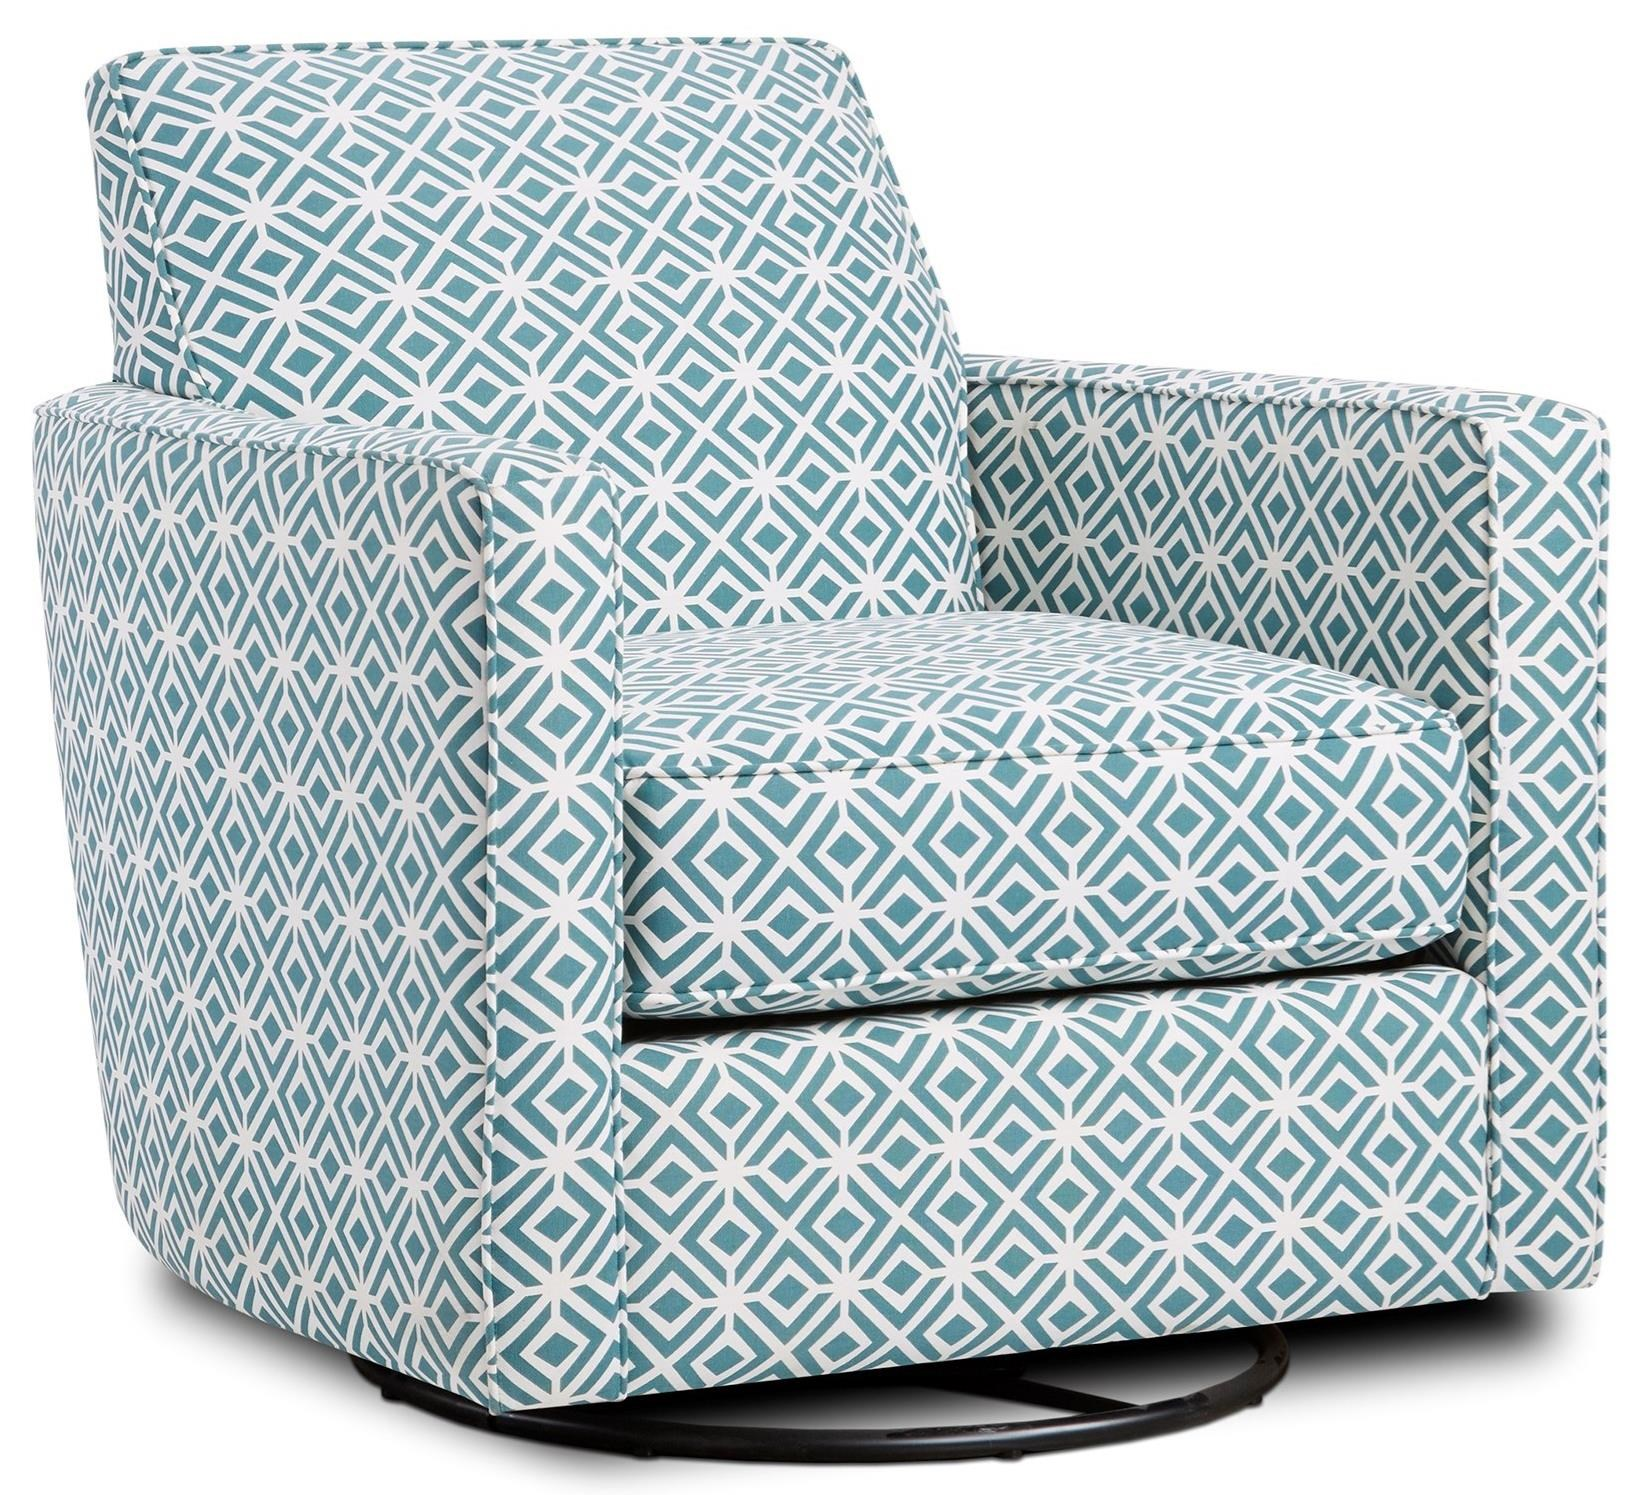 402-G Swivel Glider by Fusion Furniture at Miller Waldrop Furniture and Decor